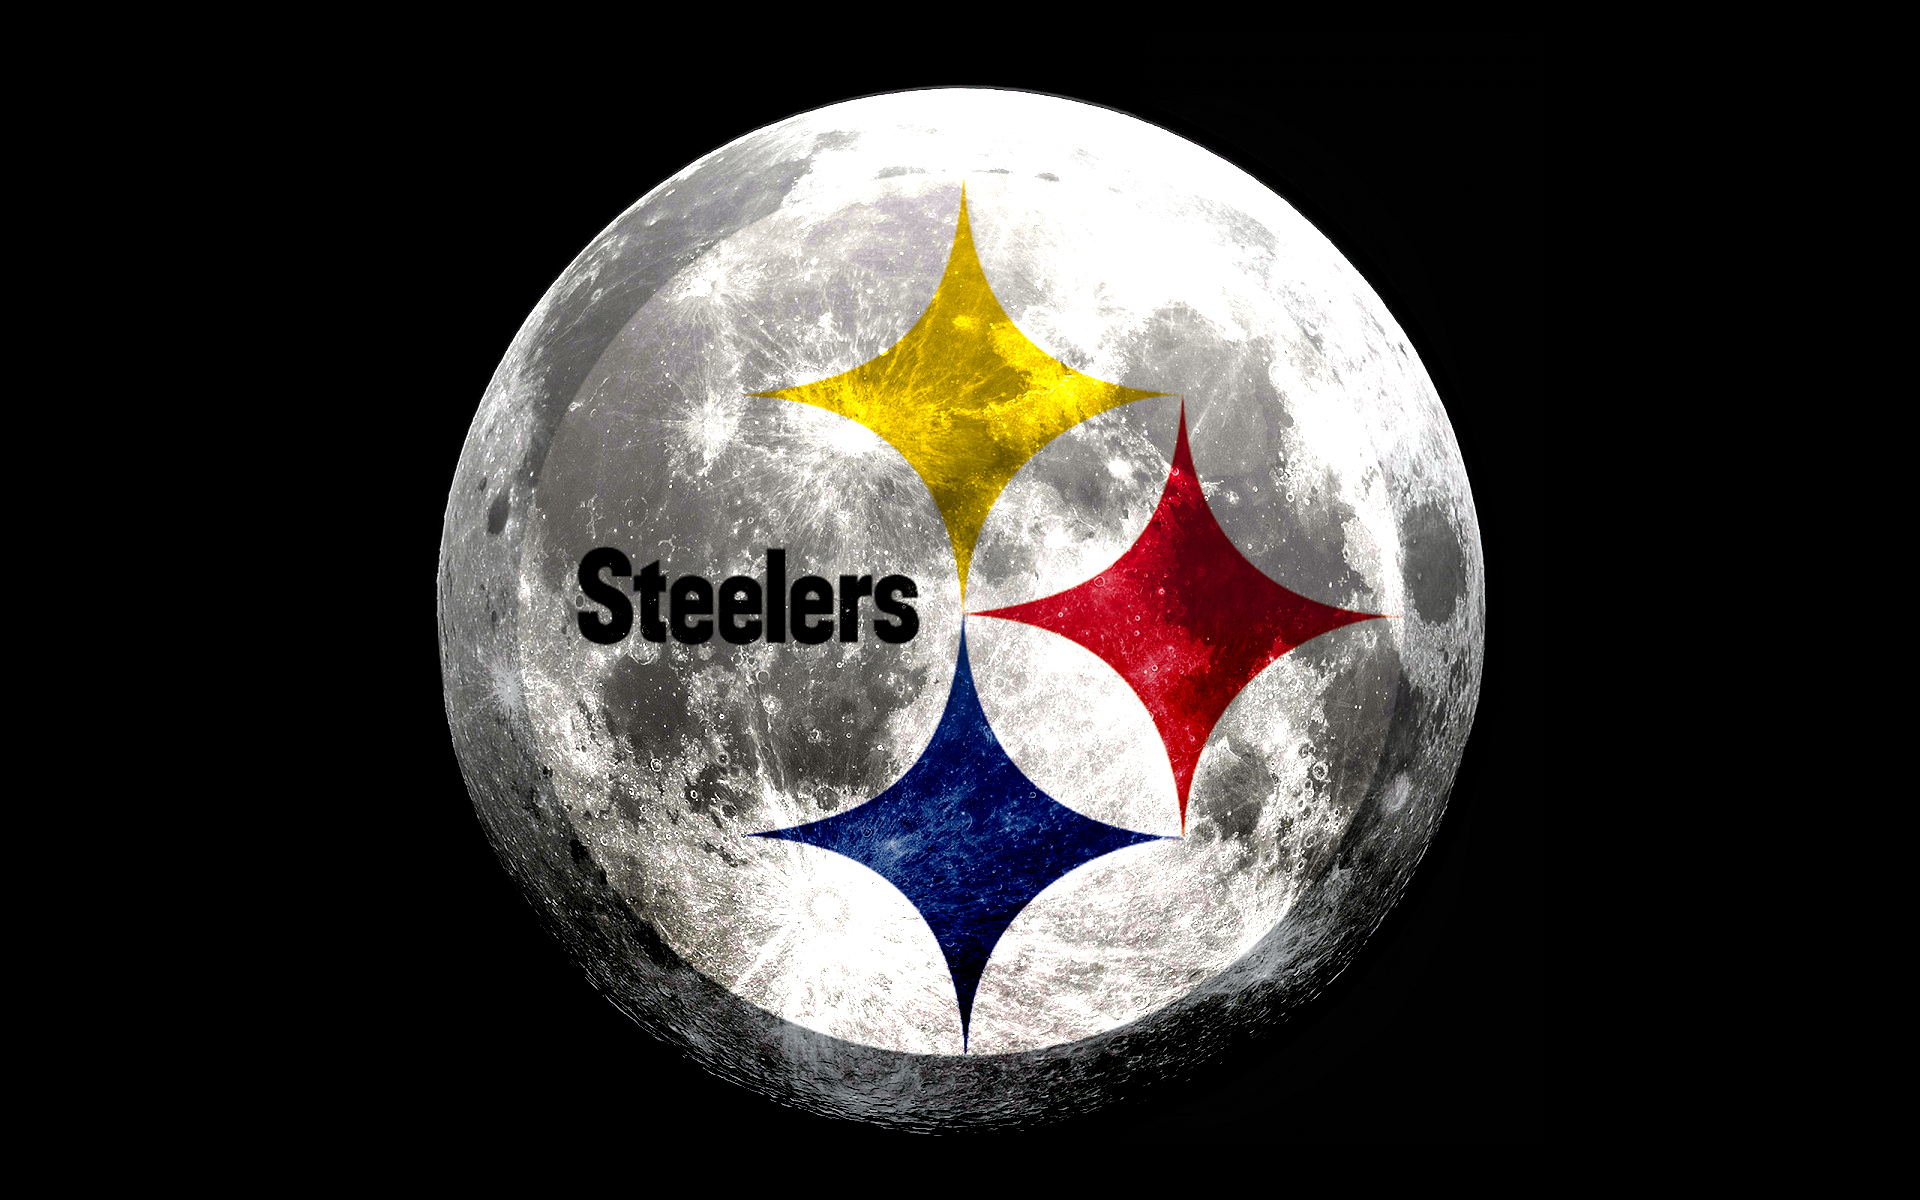 Steelers Moon - 1920x1200